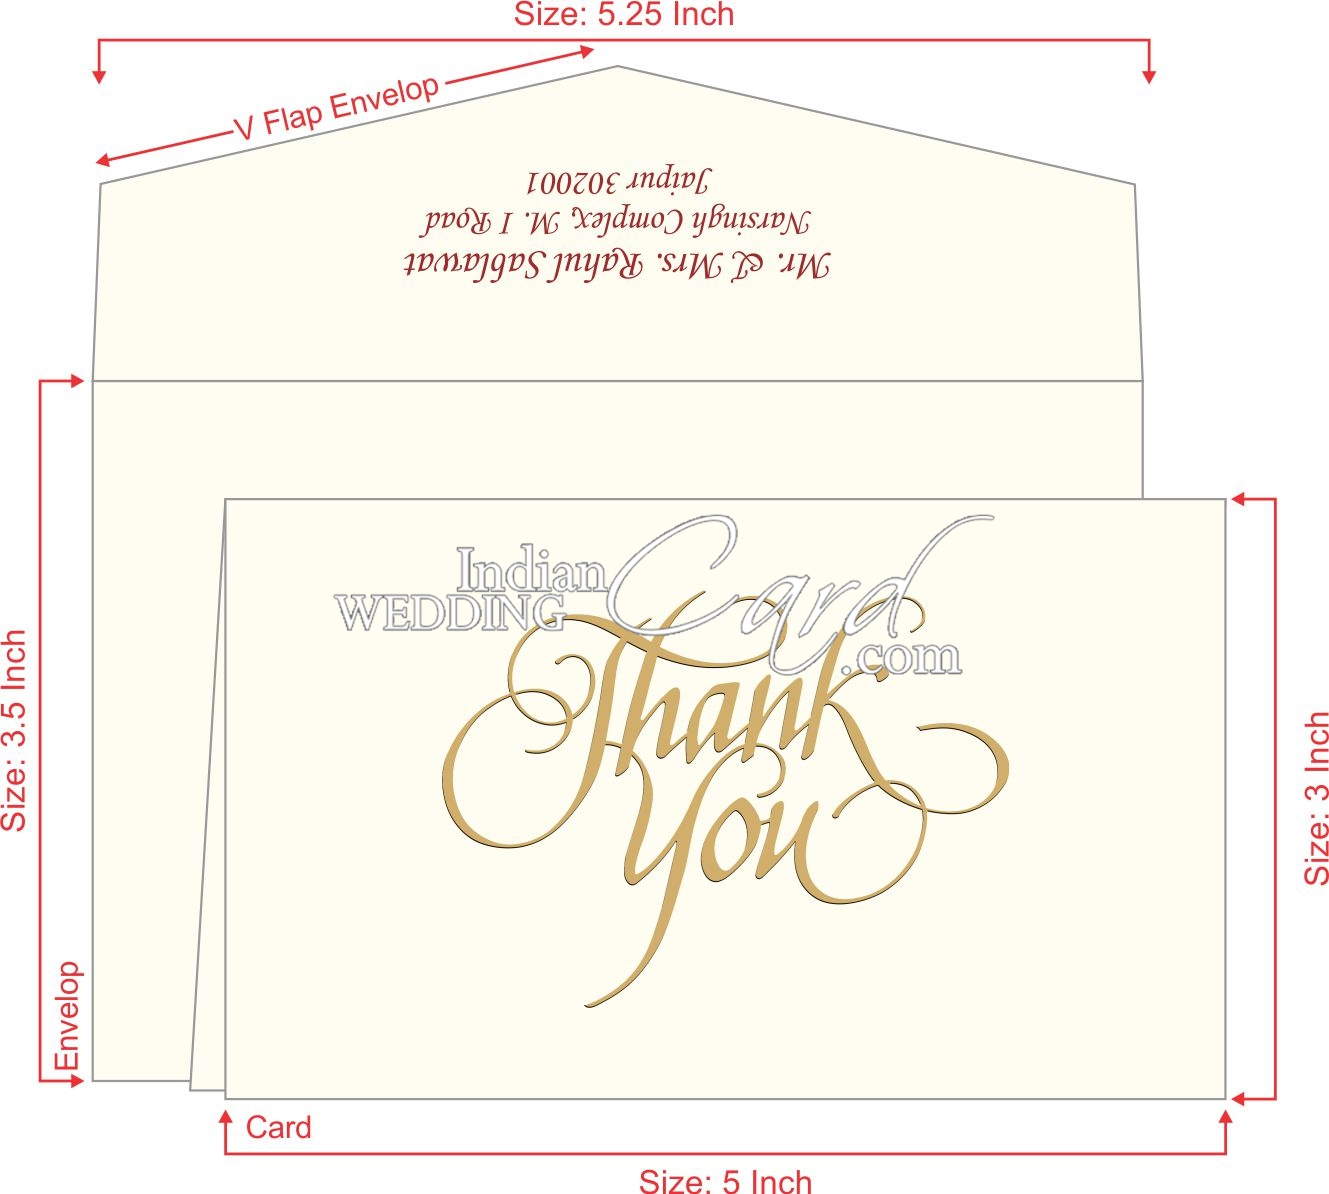 Thank You Invitations Cards